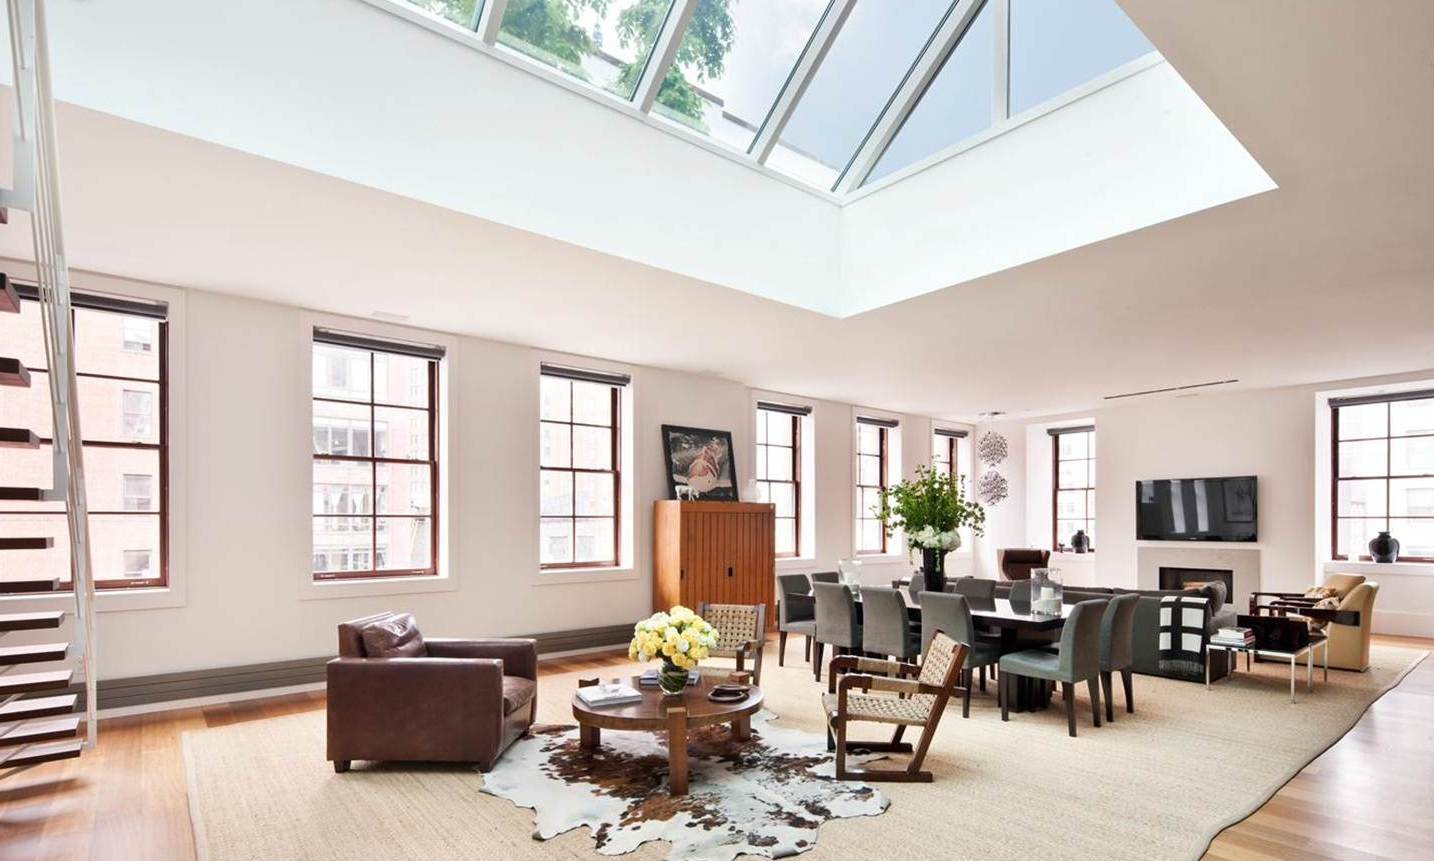 Featured Image of Living Room With Glass Ceiling